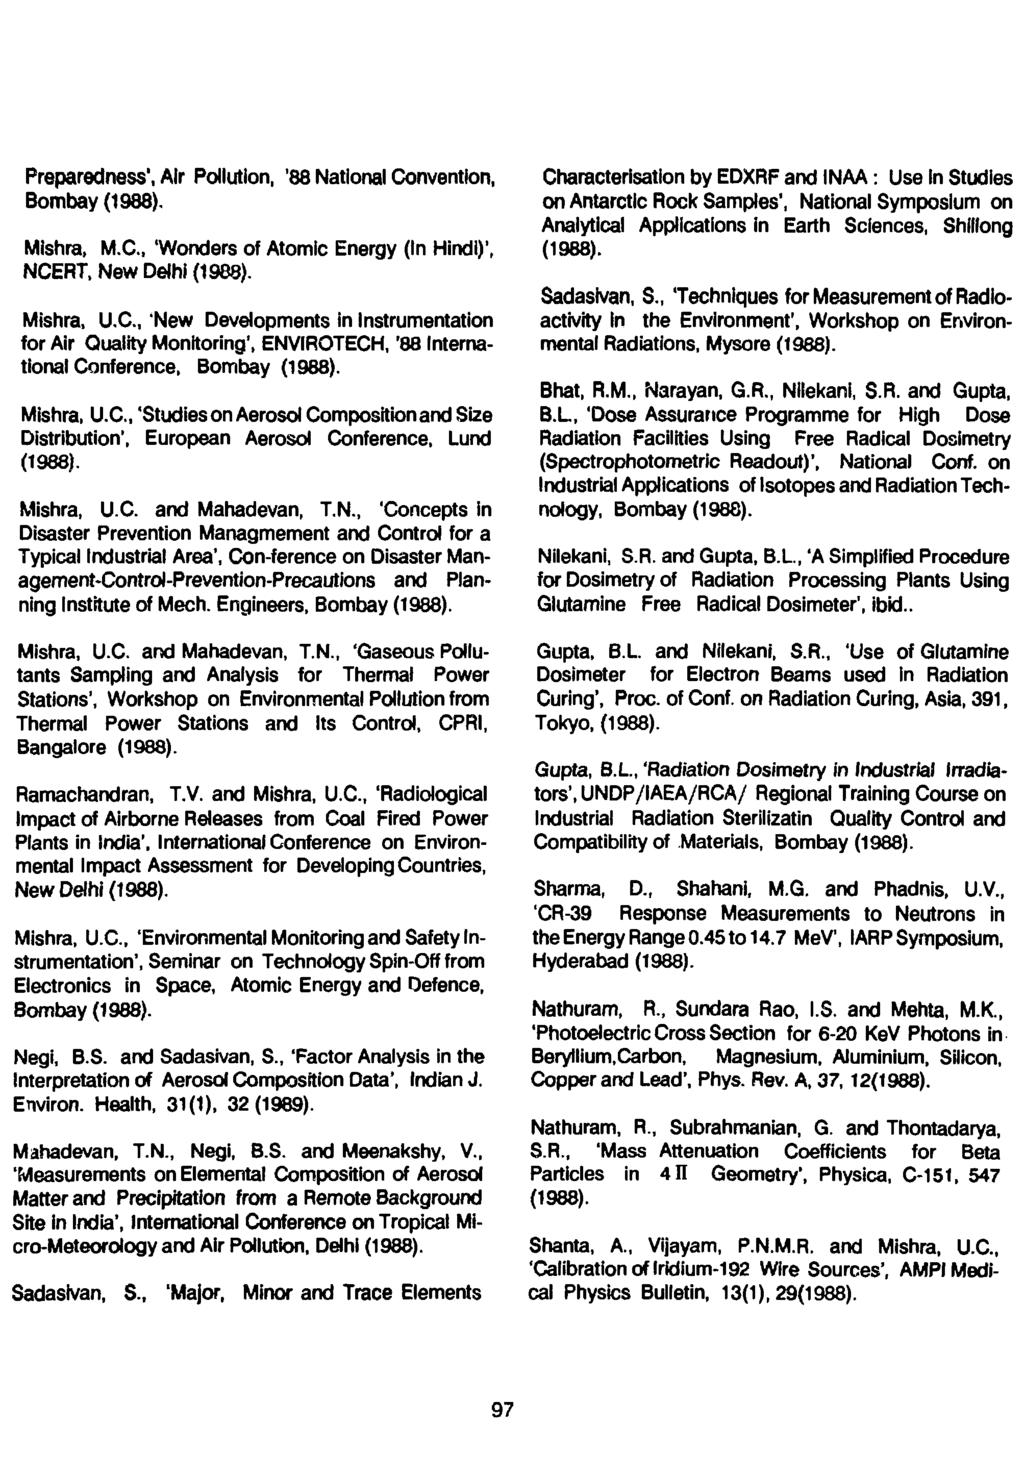 Preparedness', Air Pollution, '88 National Convention, Bombay Mishra, M.C., 'Wonders of Atomic Energy (In Hindi)', NCERT. New Delhi Mishra, U.C., 'New Developments in Instrumentation for Air Quality Monitoring 1, ENVIROTECH, '88 International Conference, Bombay Mishra, U.